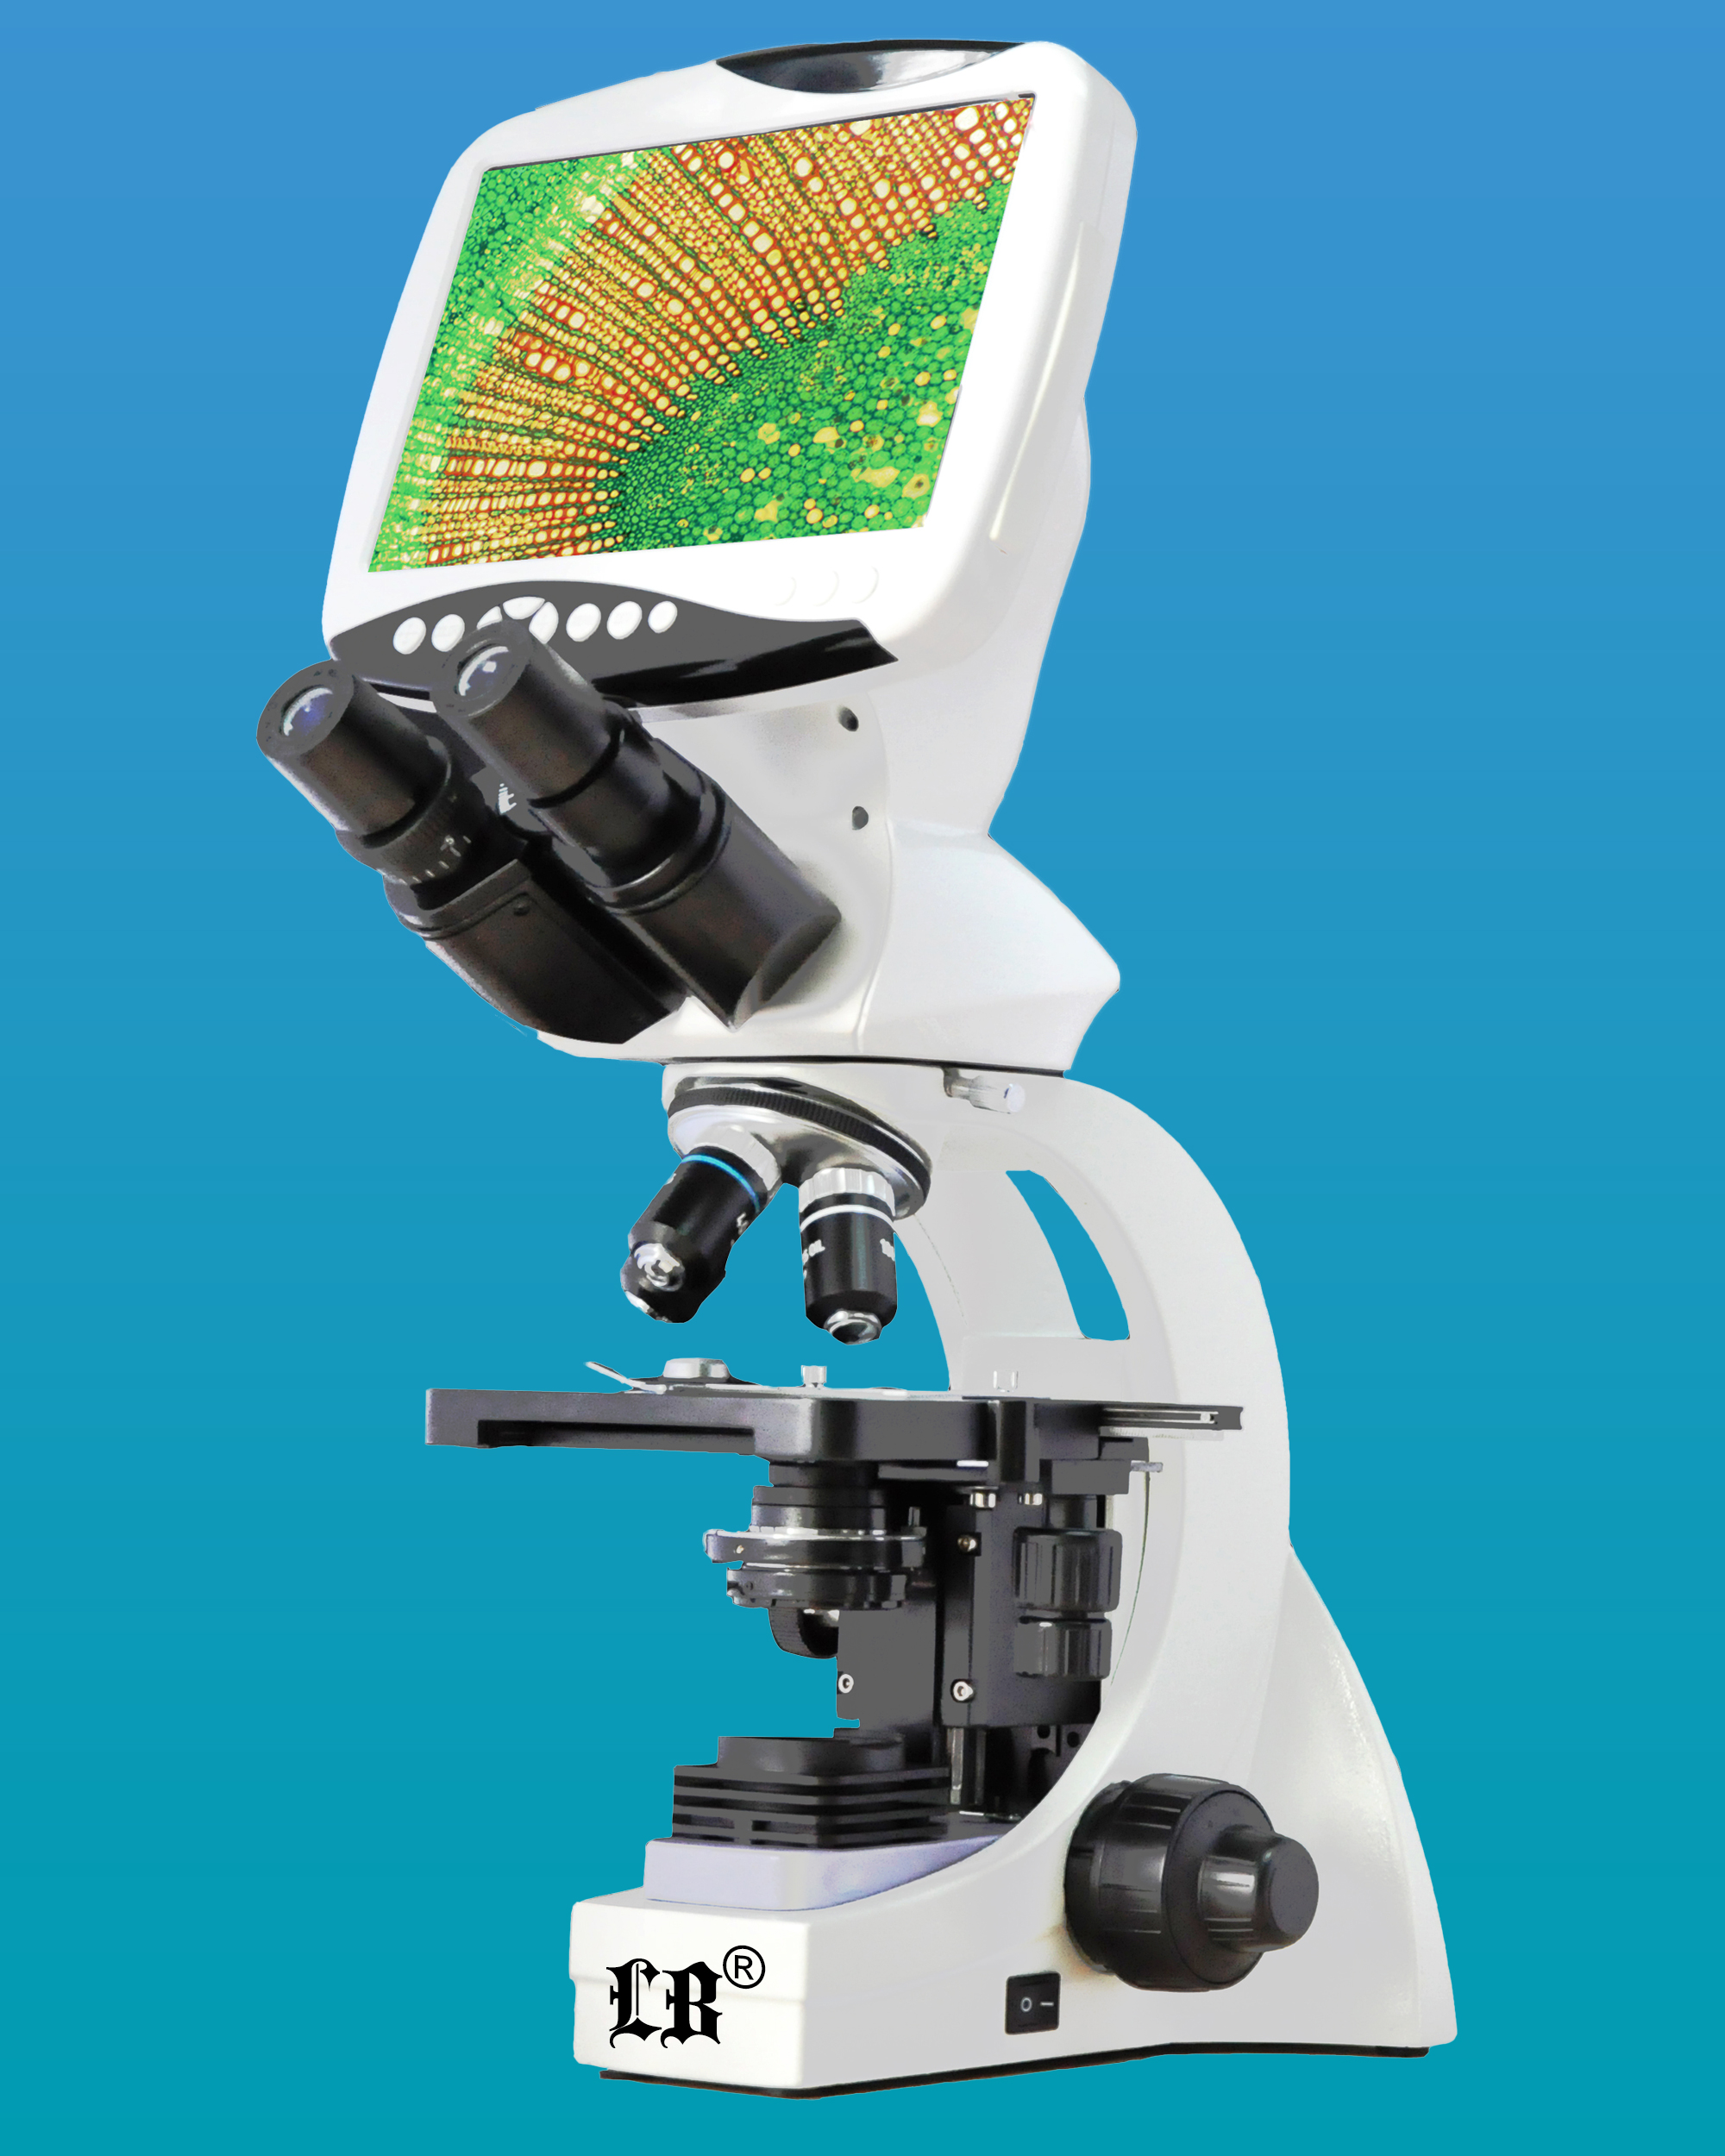 [LB-1261] Compound LCD Digital Biological Microscope w/ Extra Wide Field & Achromatic Optical System  (Infinity Color Corrected System) (12.0MP)